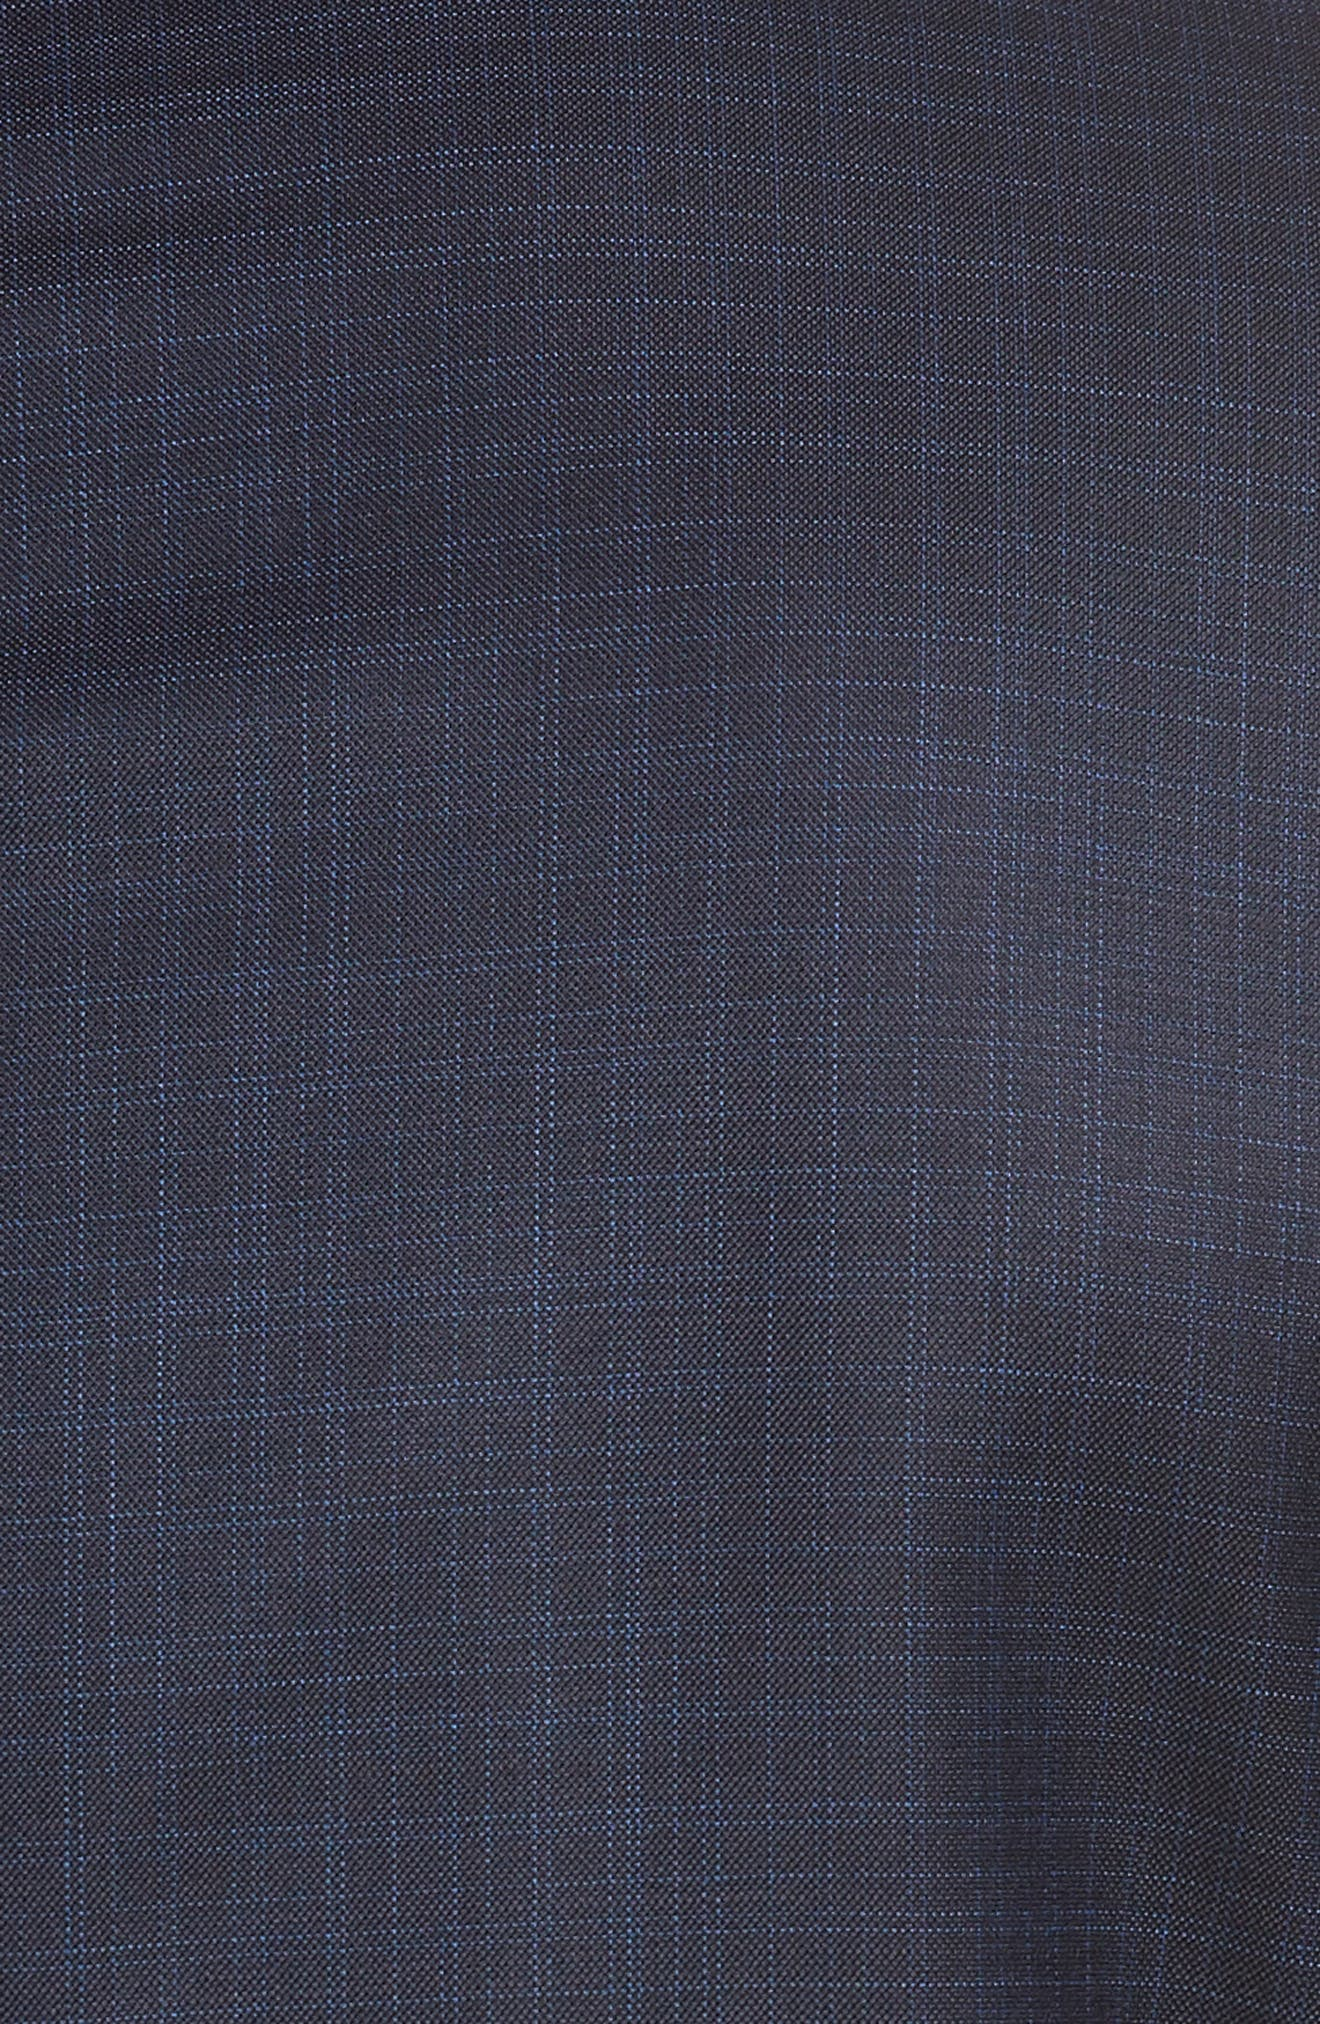 Huge/Genius Trim Fit Plaid Wool Blend Suit,                             Alternate thumbnail 7, color,                             400